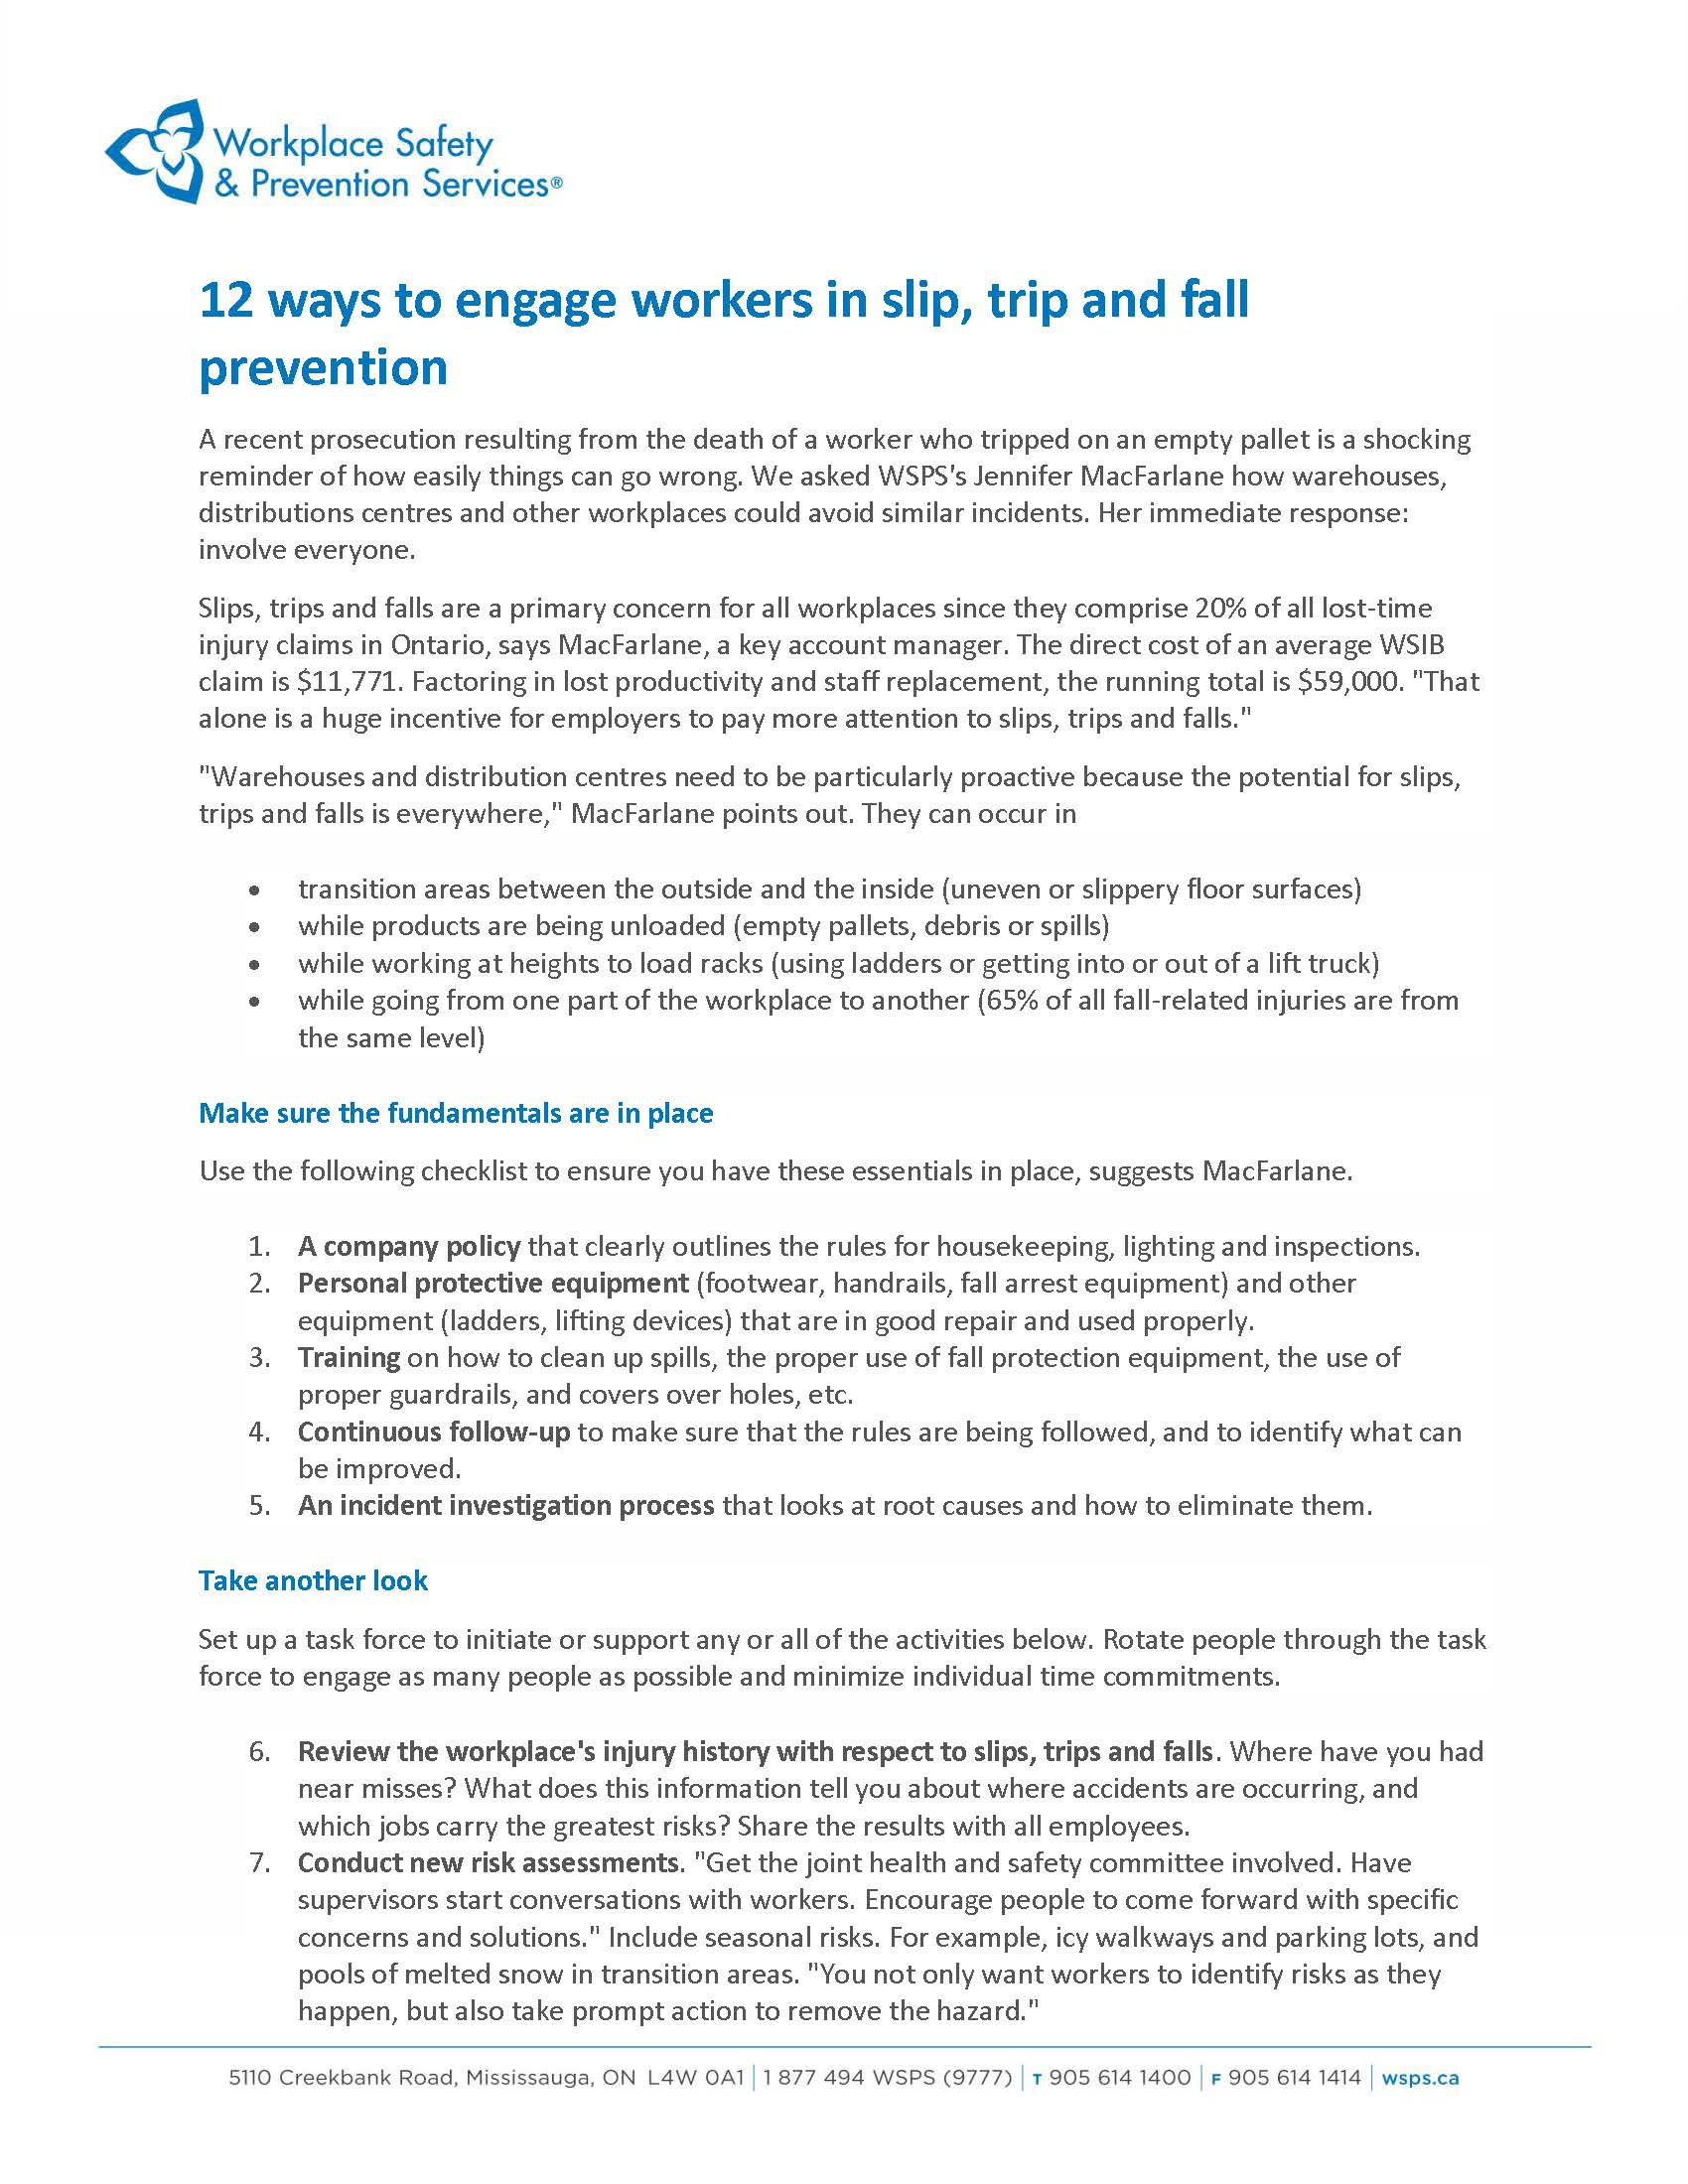 12 WAYS TO ENGAGE WORKERS ON SLIPS, TRIPS & FALLS